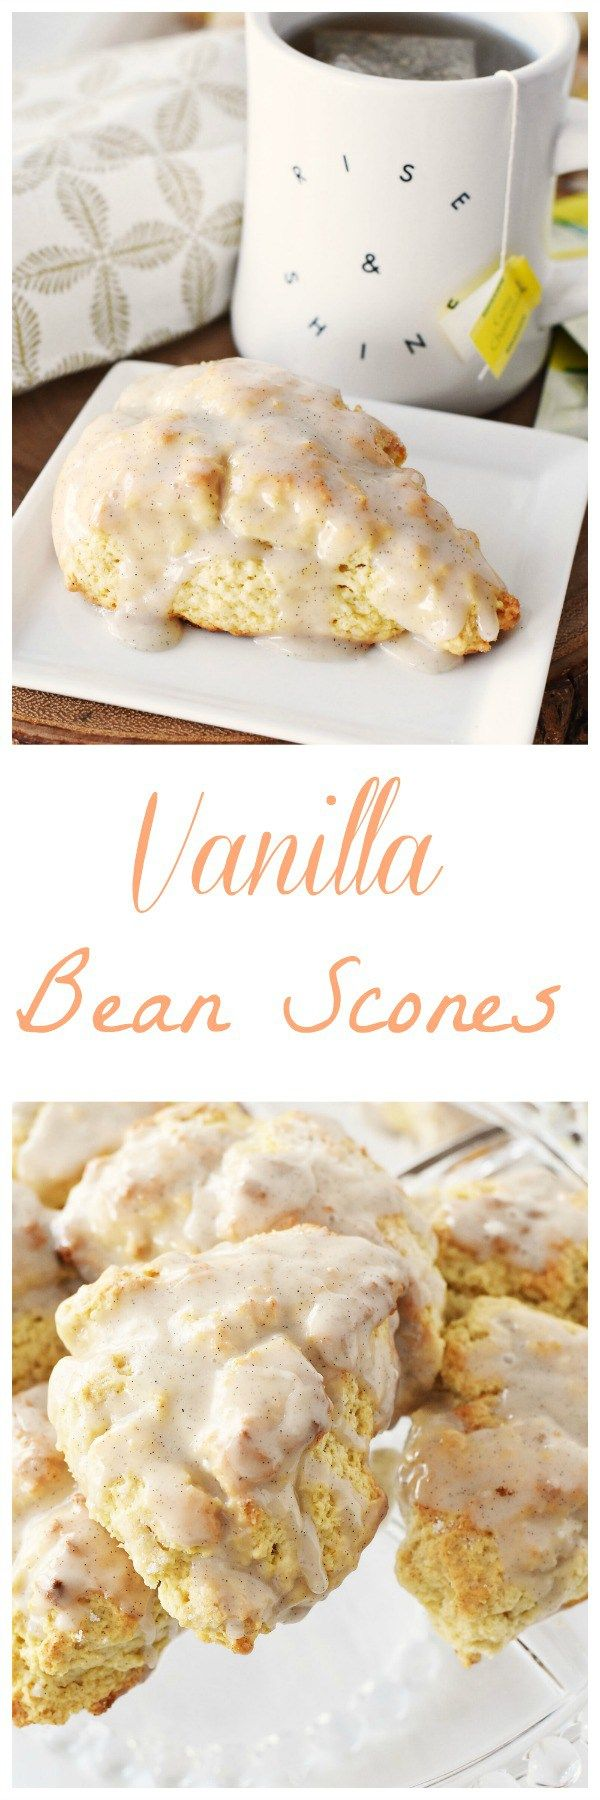 Vanilla Bean Scones anyone? Get this perfectly sweet and moist vanilla bean scone recipe today. the glaze reminded my kids of vanilla ice cream. Pairs perfectly with tea as well! AD #TeaProudly @walmart